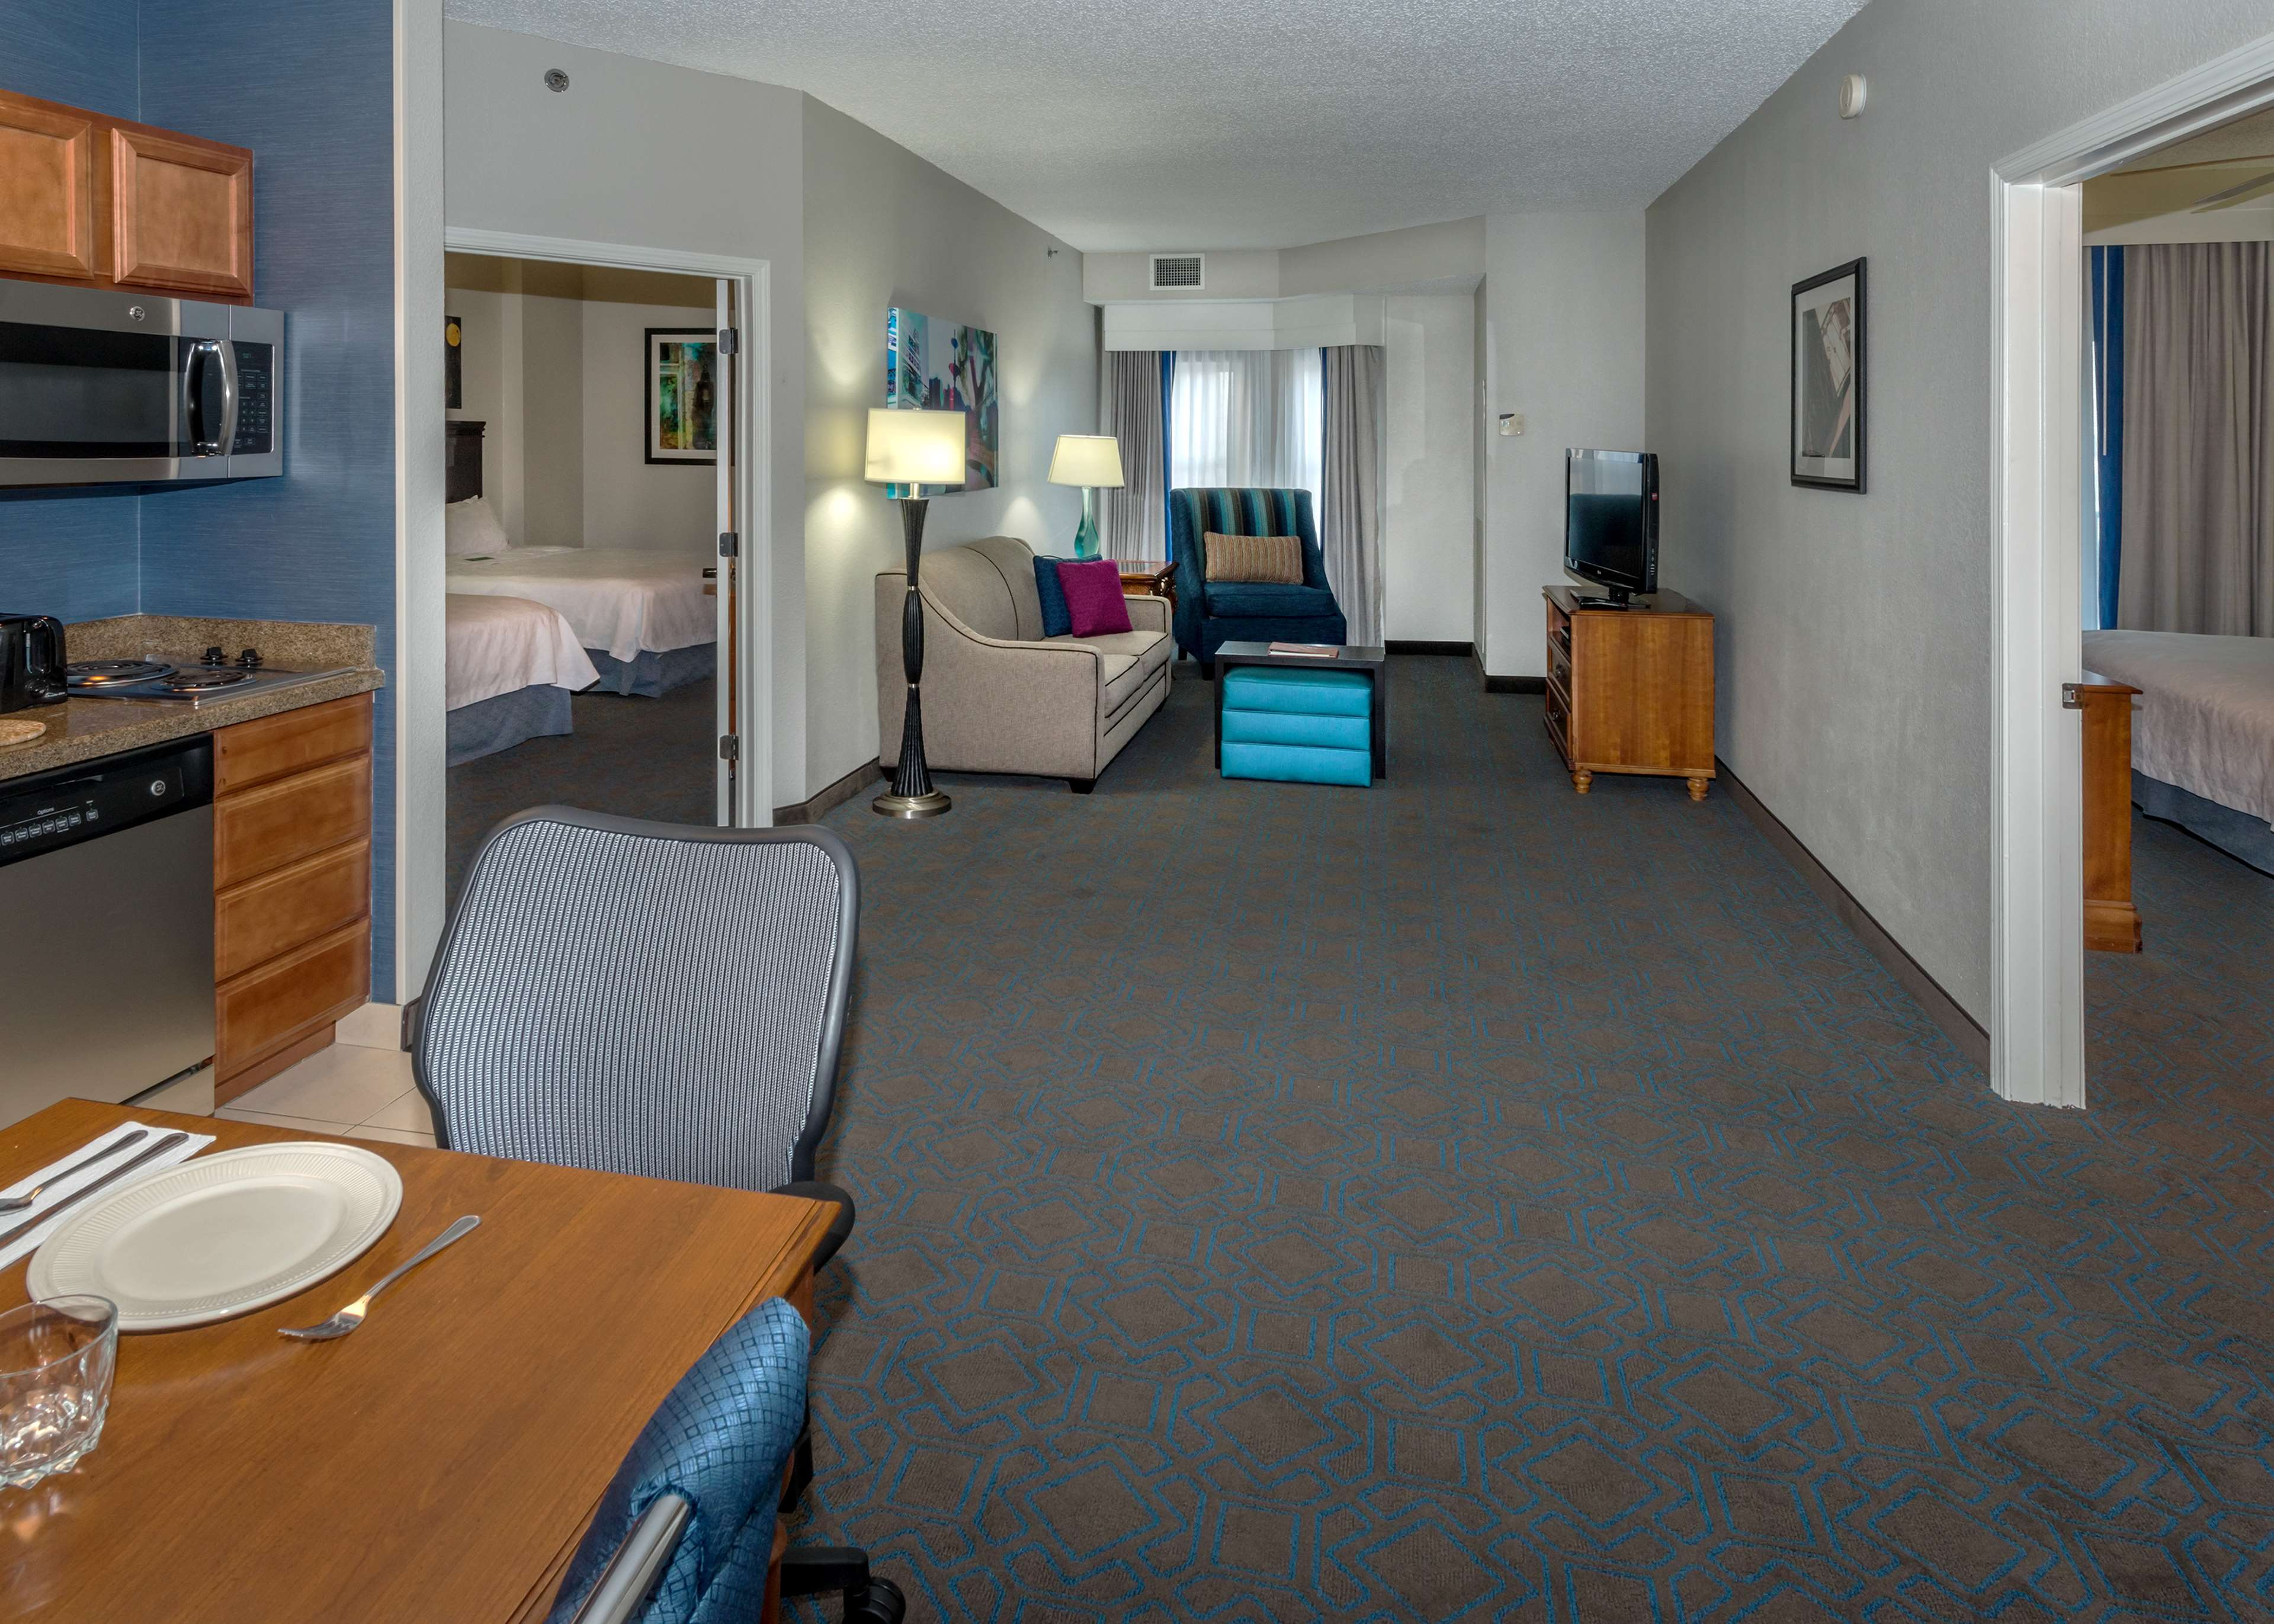 Homewood Suites by Hilton New Orleans image 23